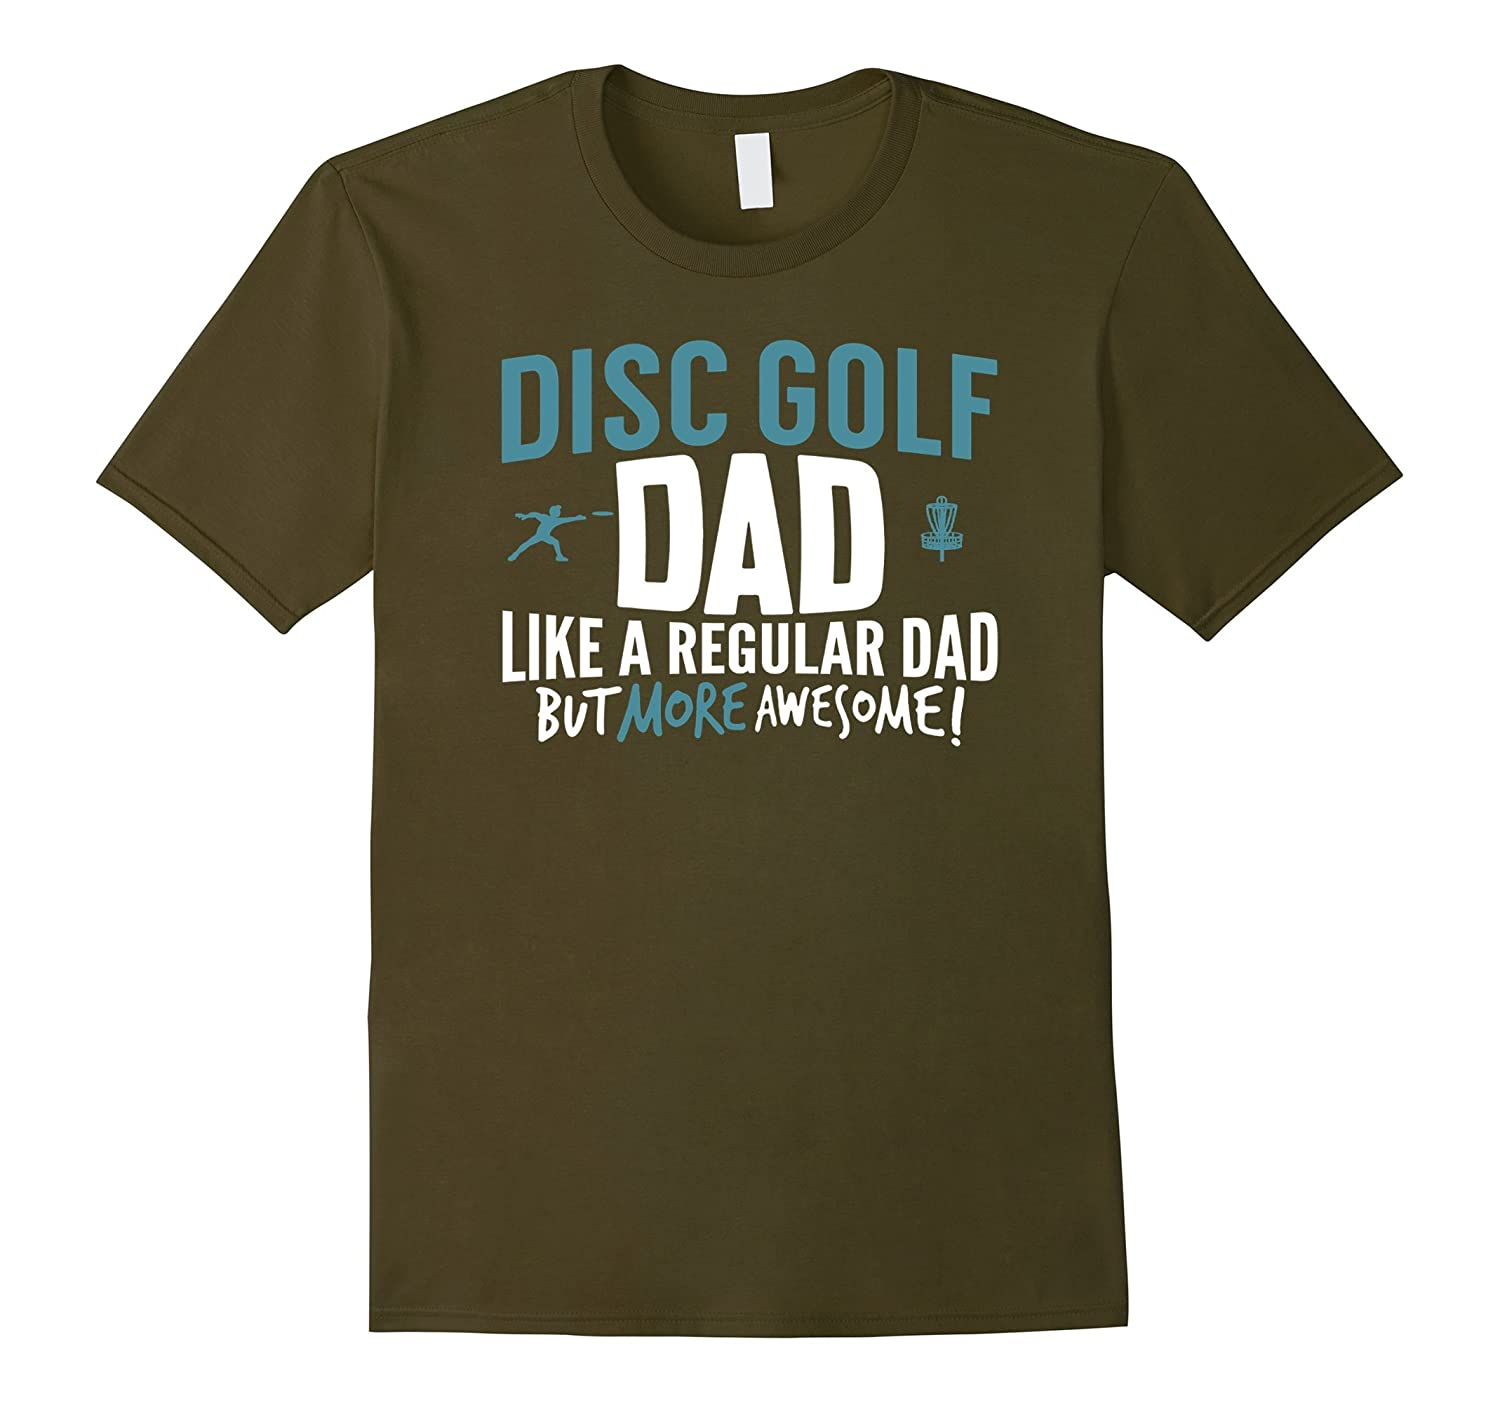 Men's Disc Golf Dad Shirt Awesome Fathers Day Gift Disk Player